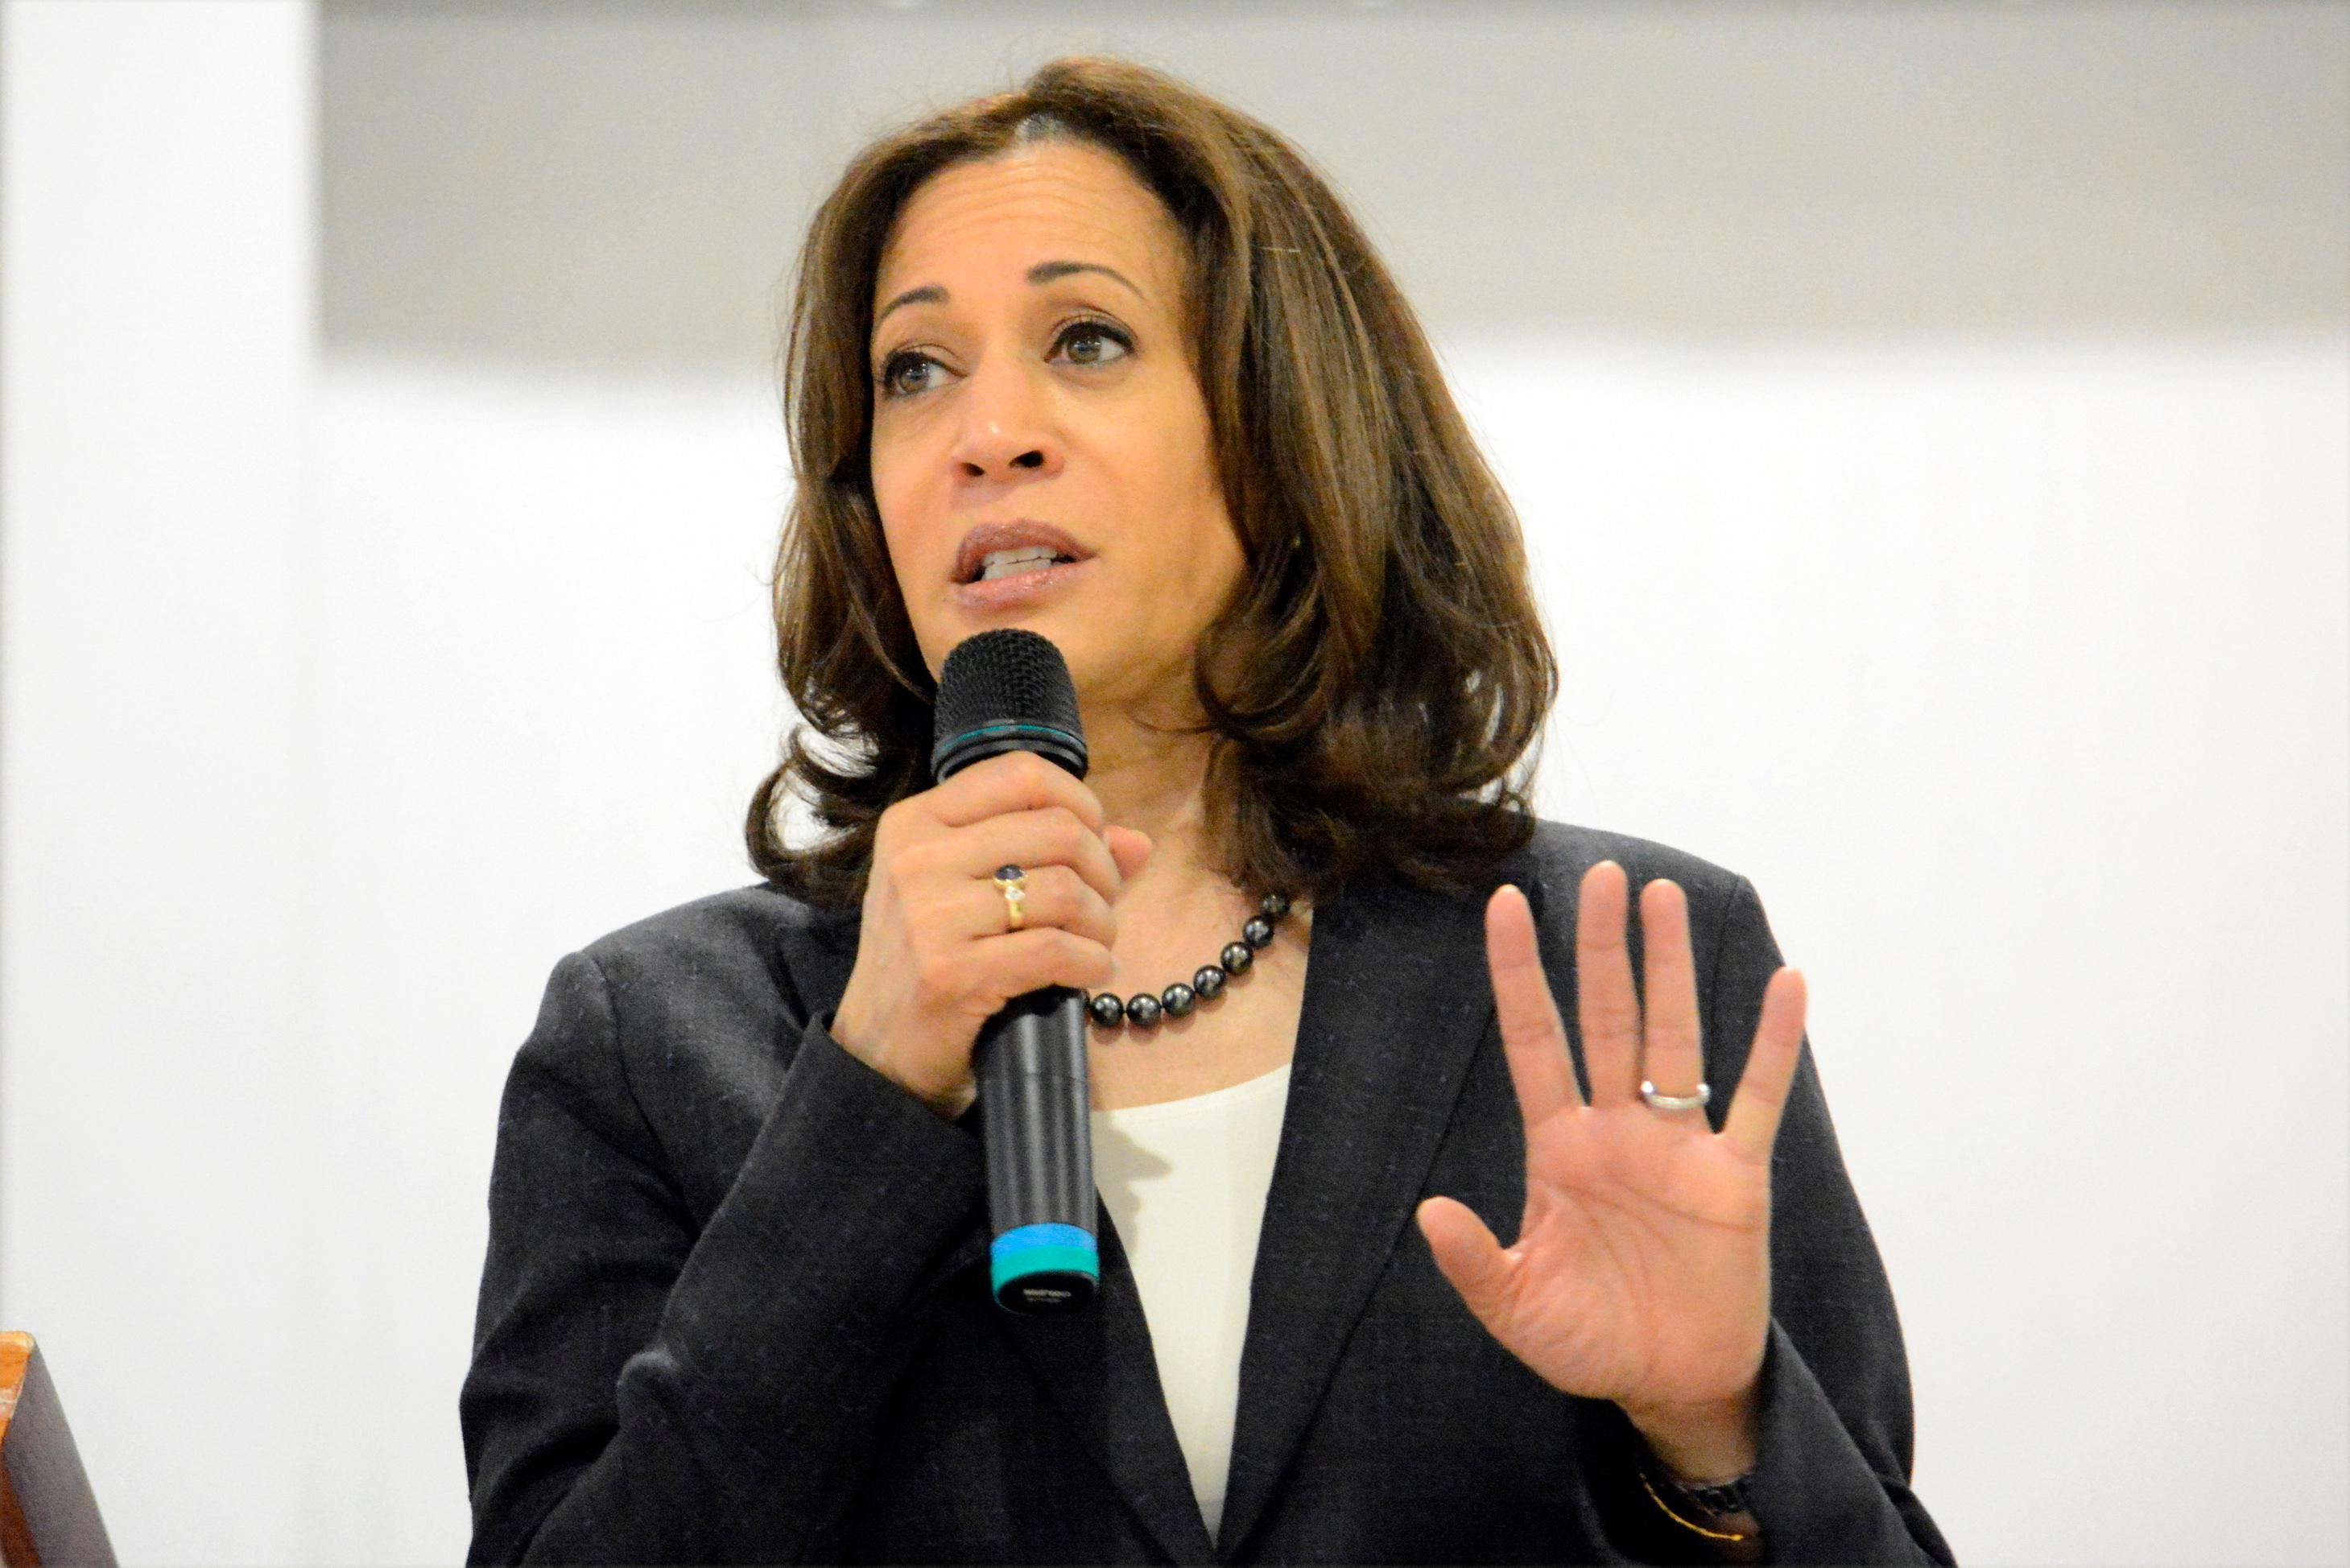 In this March 9, 2019, photo, Sen. Kamala Harris, D-Calif., speaks during an event in St. George, S.C. Elizabeth Warren is betting voters are looking for a policy guru. (AP Photo/Meg Kinnard)